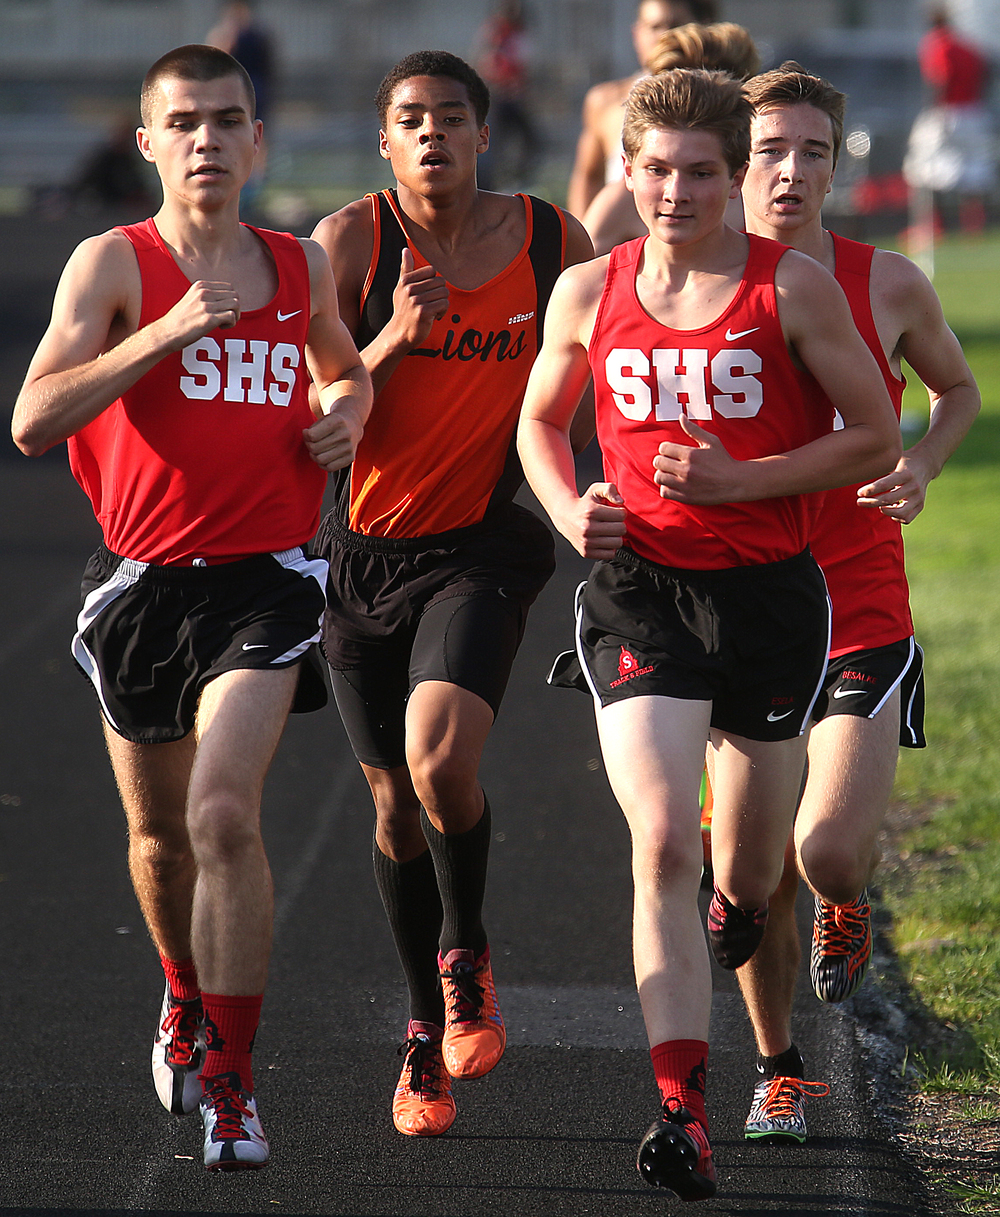 Springfield High School runner Michael Neposchlan at left won the 3200 meter run in a time of 10:15.57. Lanphier's Kevin Stewart to rear of Neposchlan came in second with a time of 10.18.75. The Boys City Track Meet took place at Memorial Stadium in Springfield on Tuesday, May 5, 2015. David Spencer/The State Journal-Register